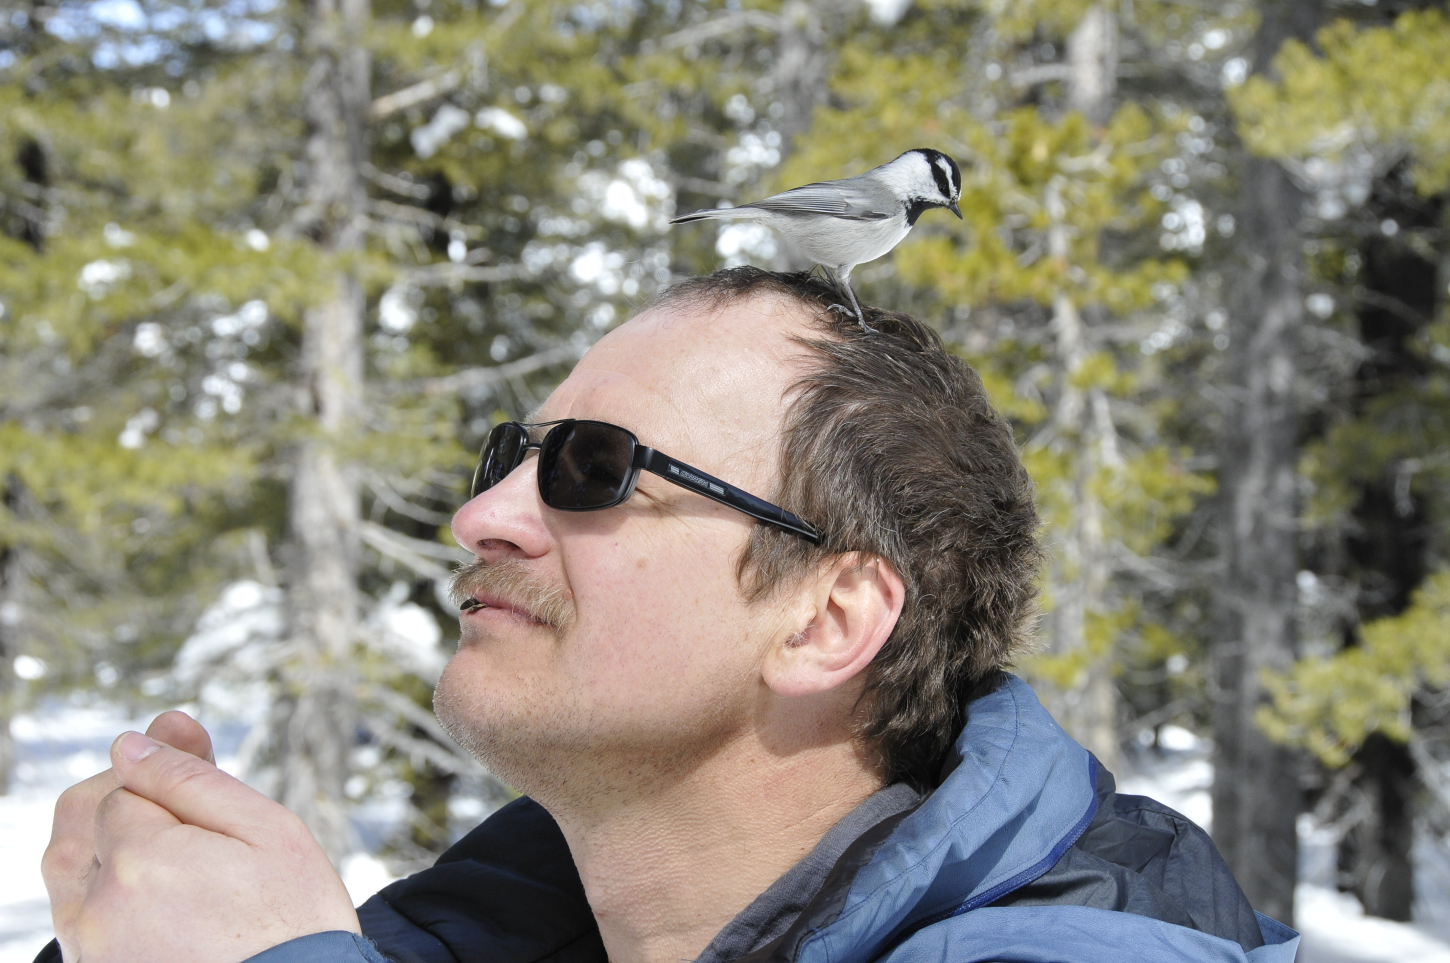 Vladimir Pravosudov in the field, with a chickadee on his head.